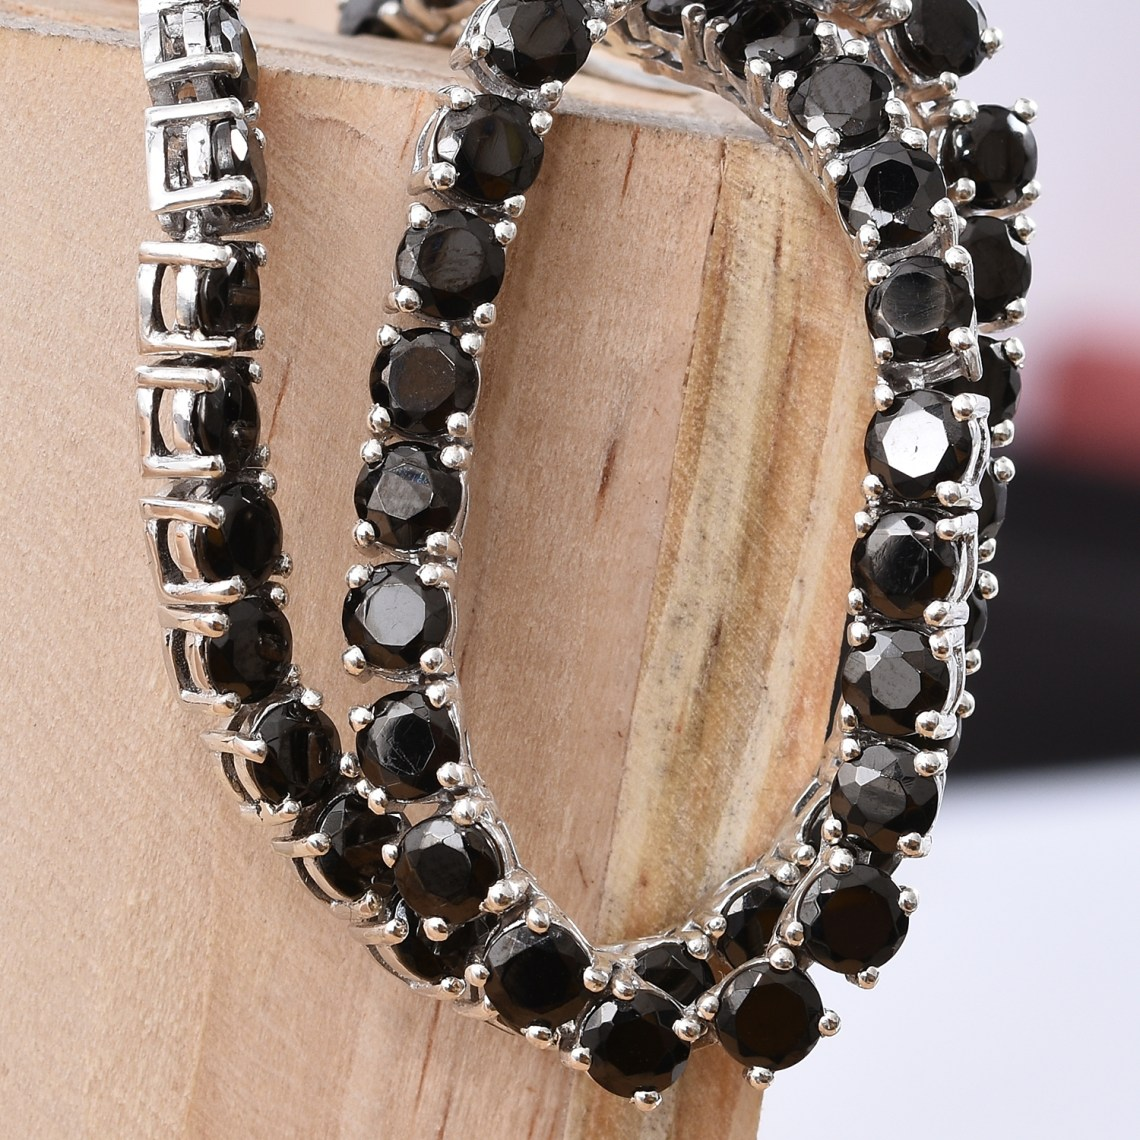 Shungite necklace draped over light colored wood.